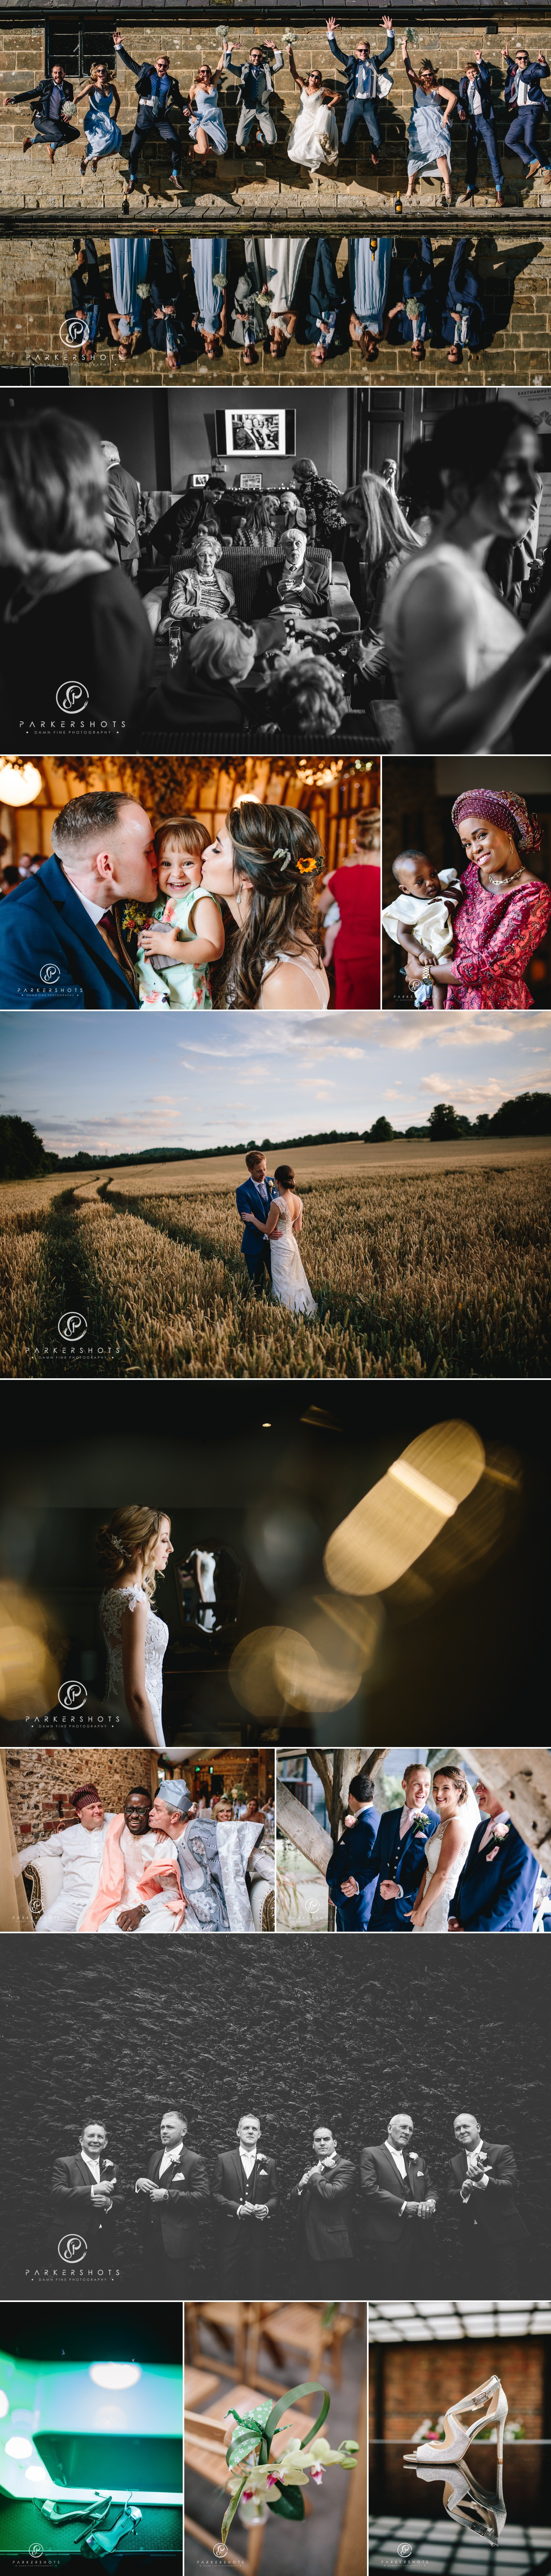 Best Winters Barns Wedding Photographer